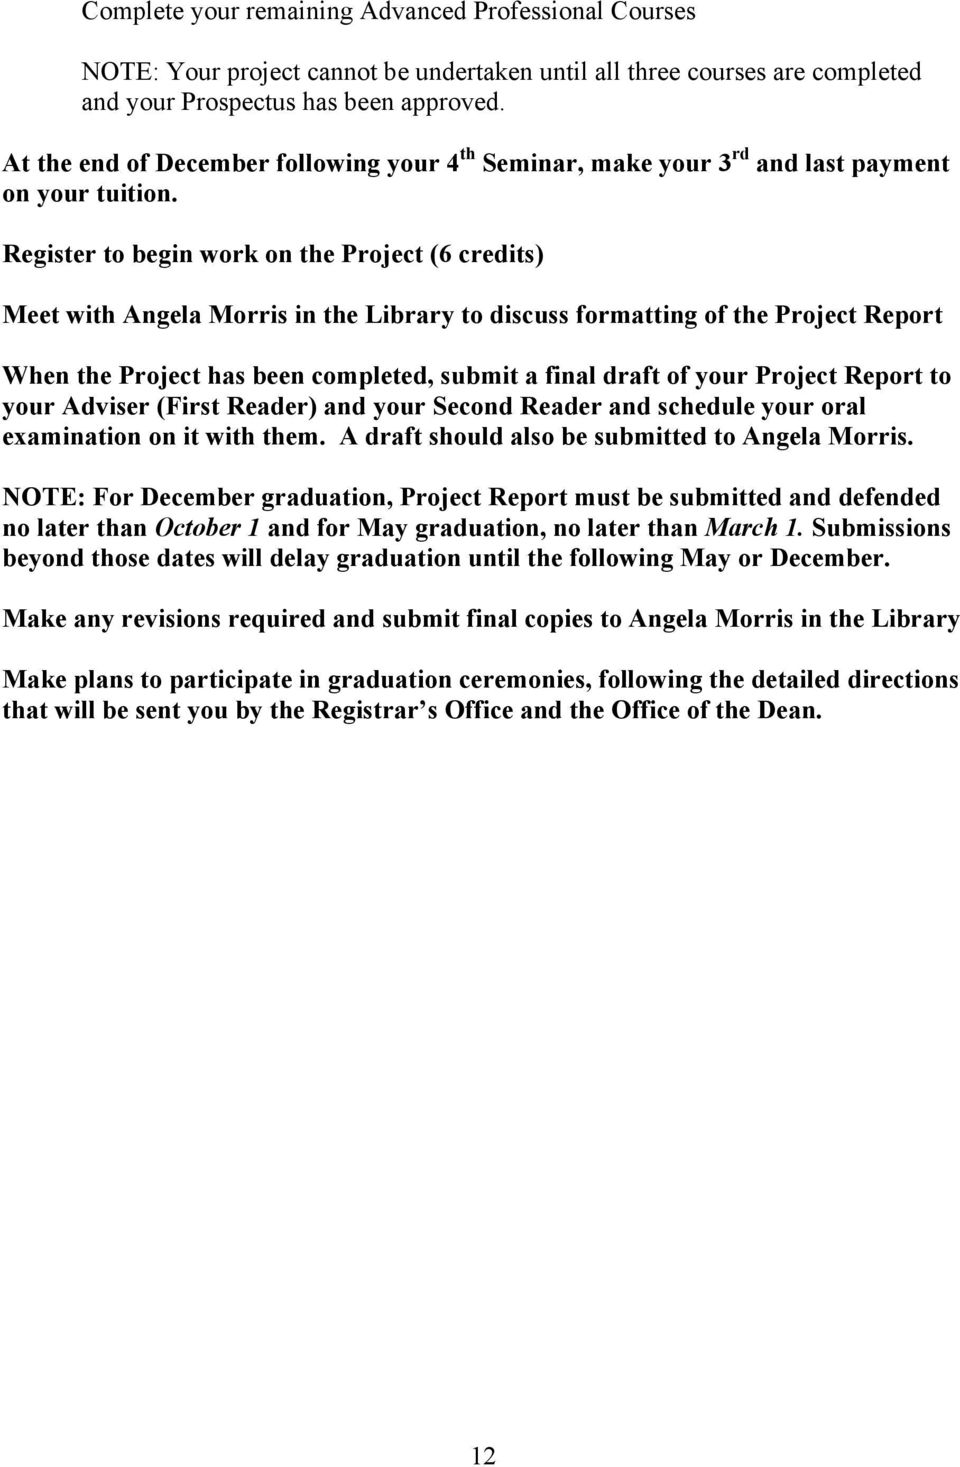 Register to begin work on the Project (6 credits) Meet with Angela Morris in the Library to discuss formatting of the Project Report When the Project has been completed, submit a final draft of your